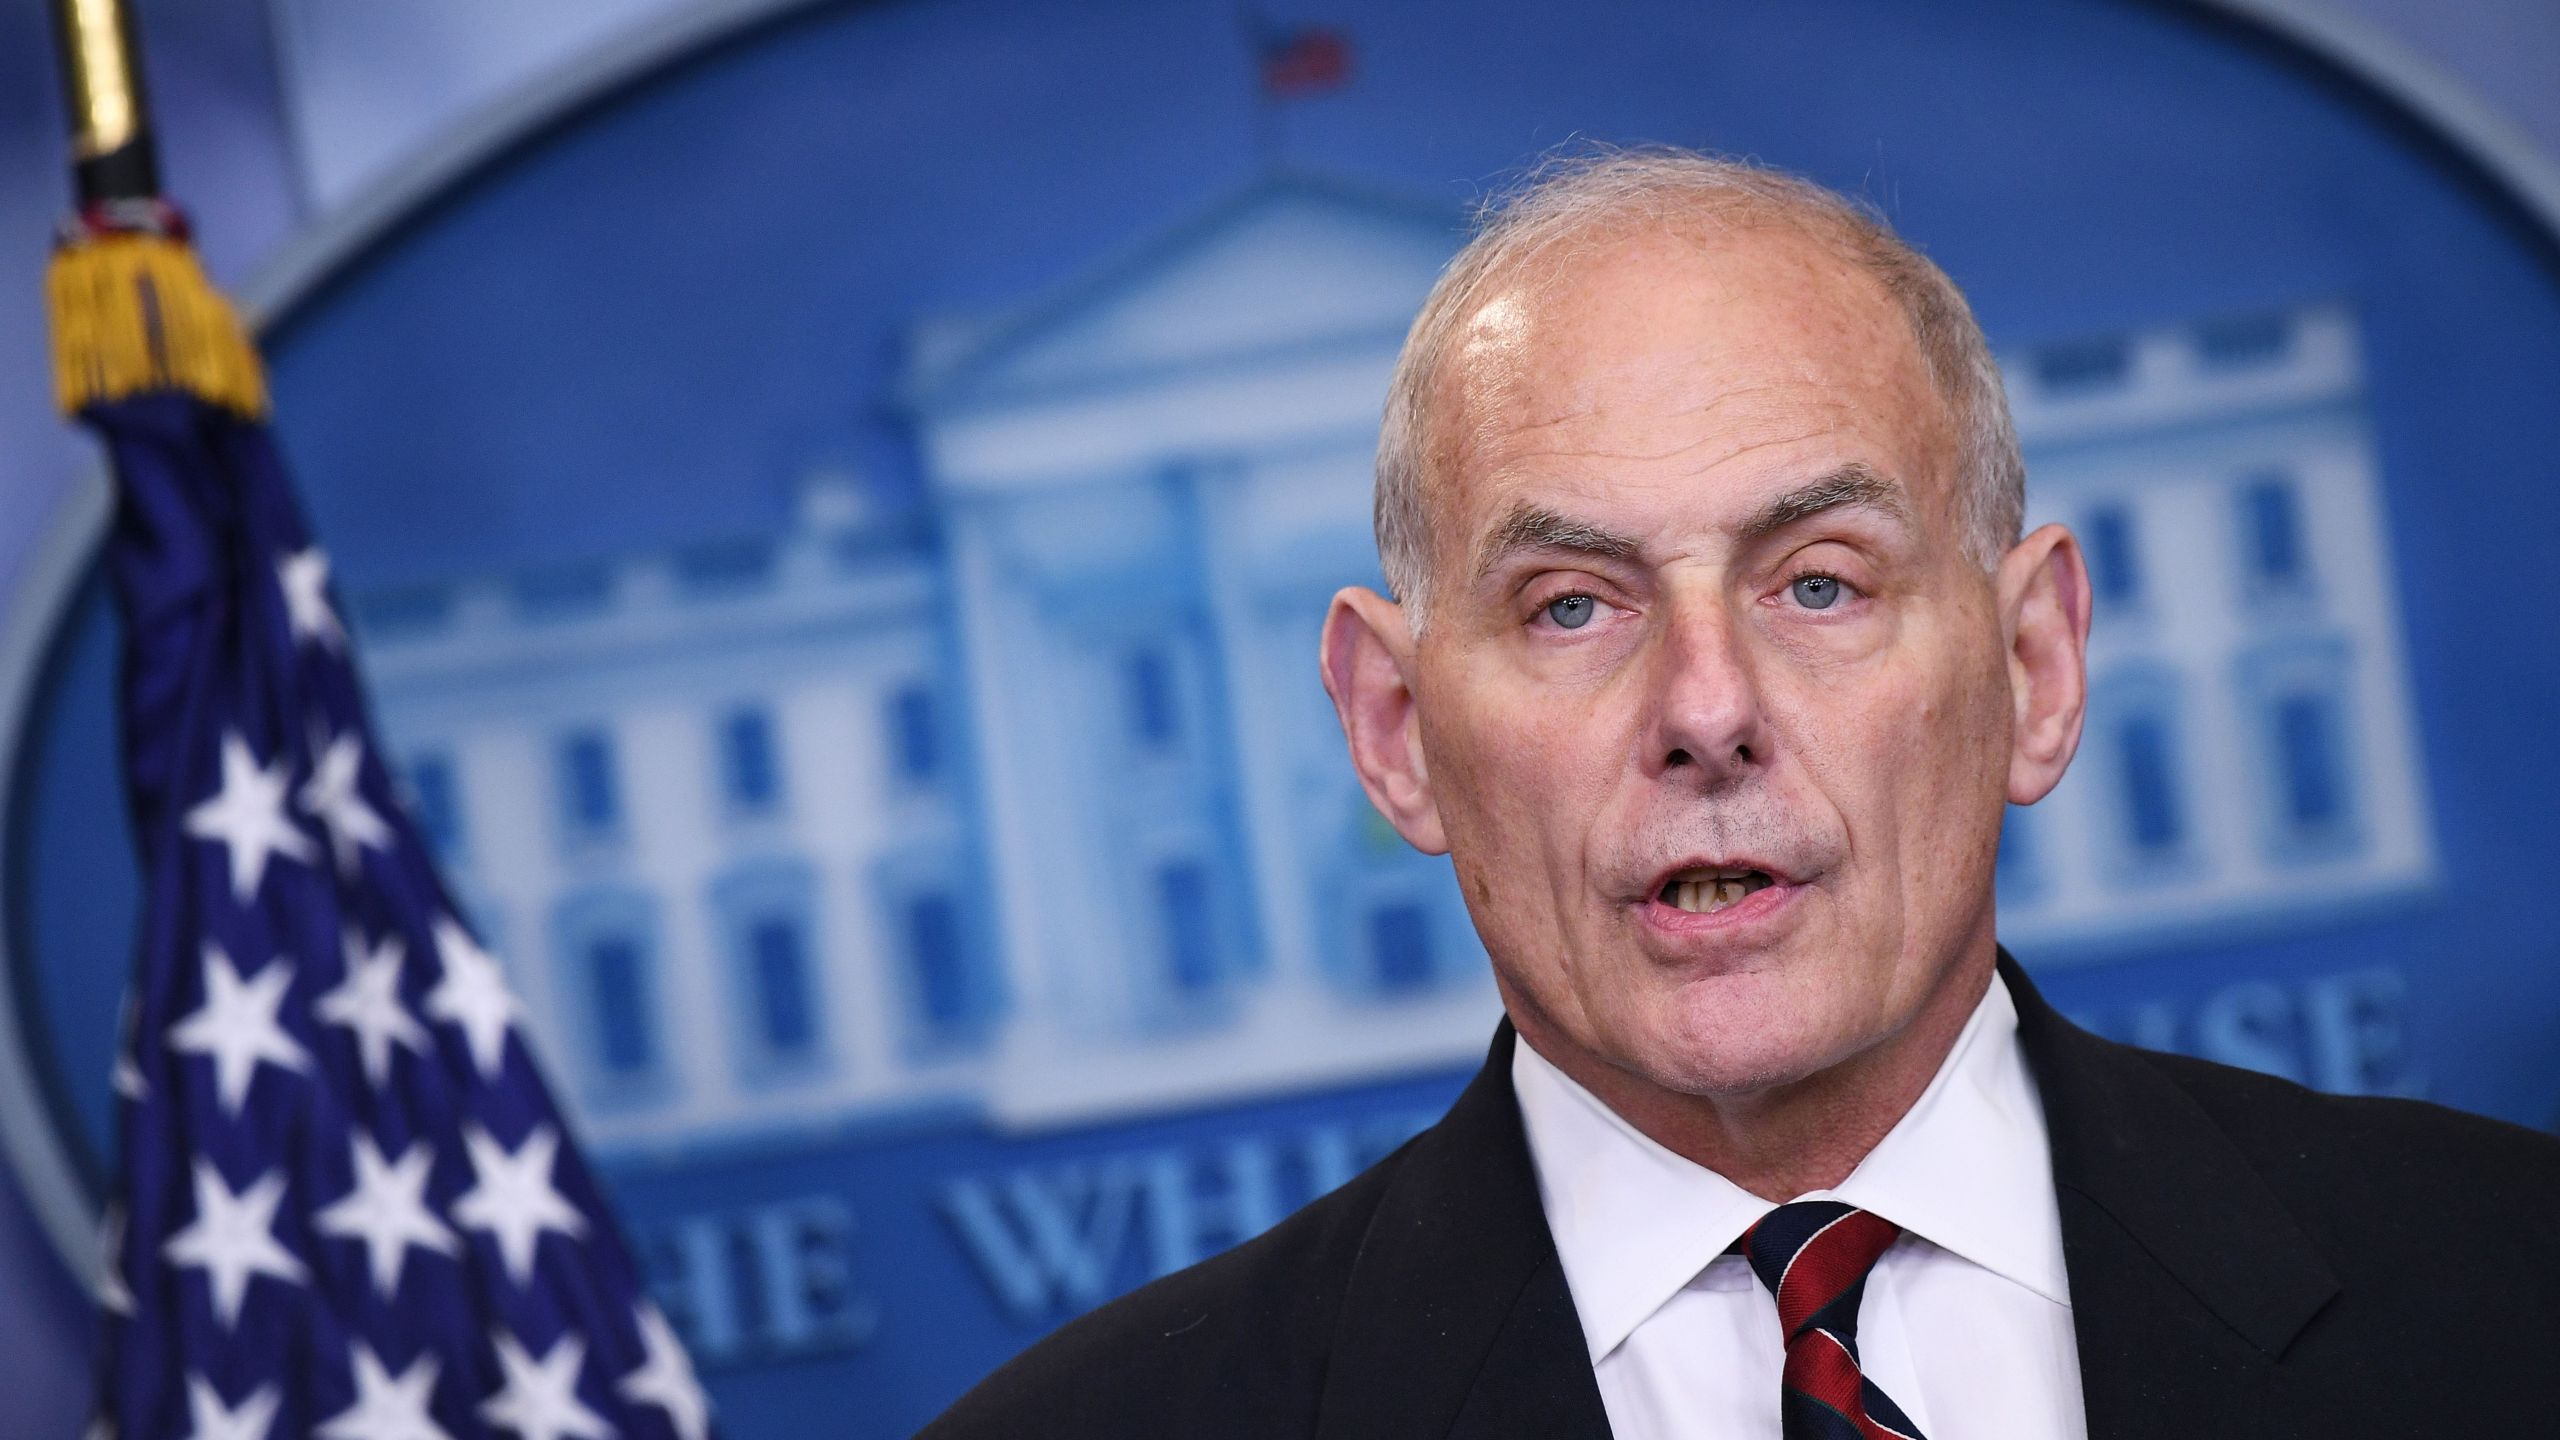 Homeland Security Secretary John Kelly speaks in the Brady Briefing Room of the White House on May 2, 2017 in Washington, DC. (MANDEL NGAN/AFP via Getty Images)